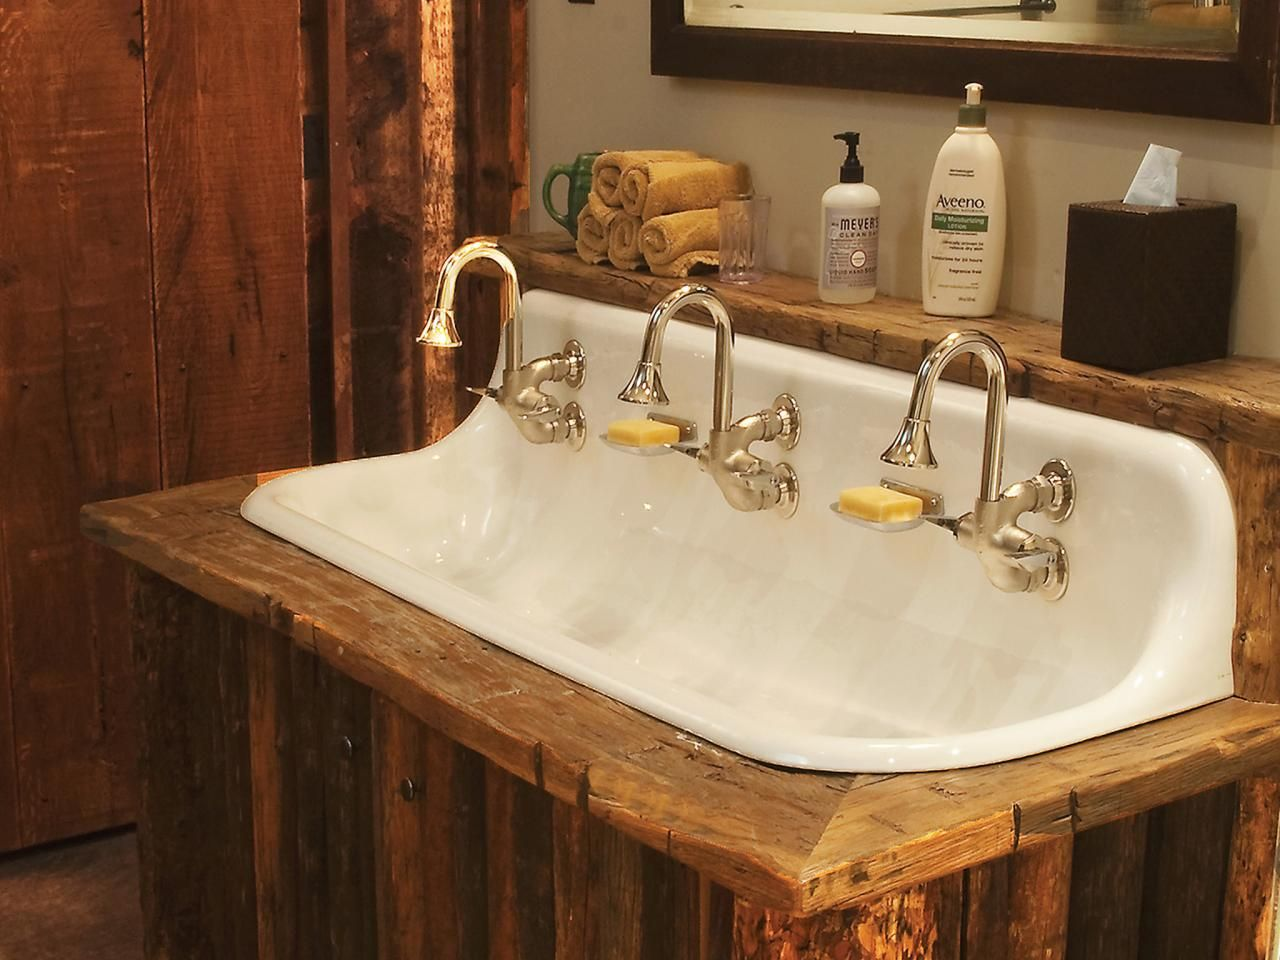 Cast iron bathroom sink - Old Rustic Bathrooms Ci Rustic Elegance Cast Iron Sink Three Faucets Pg148 S4x3 From Larry